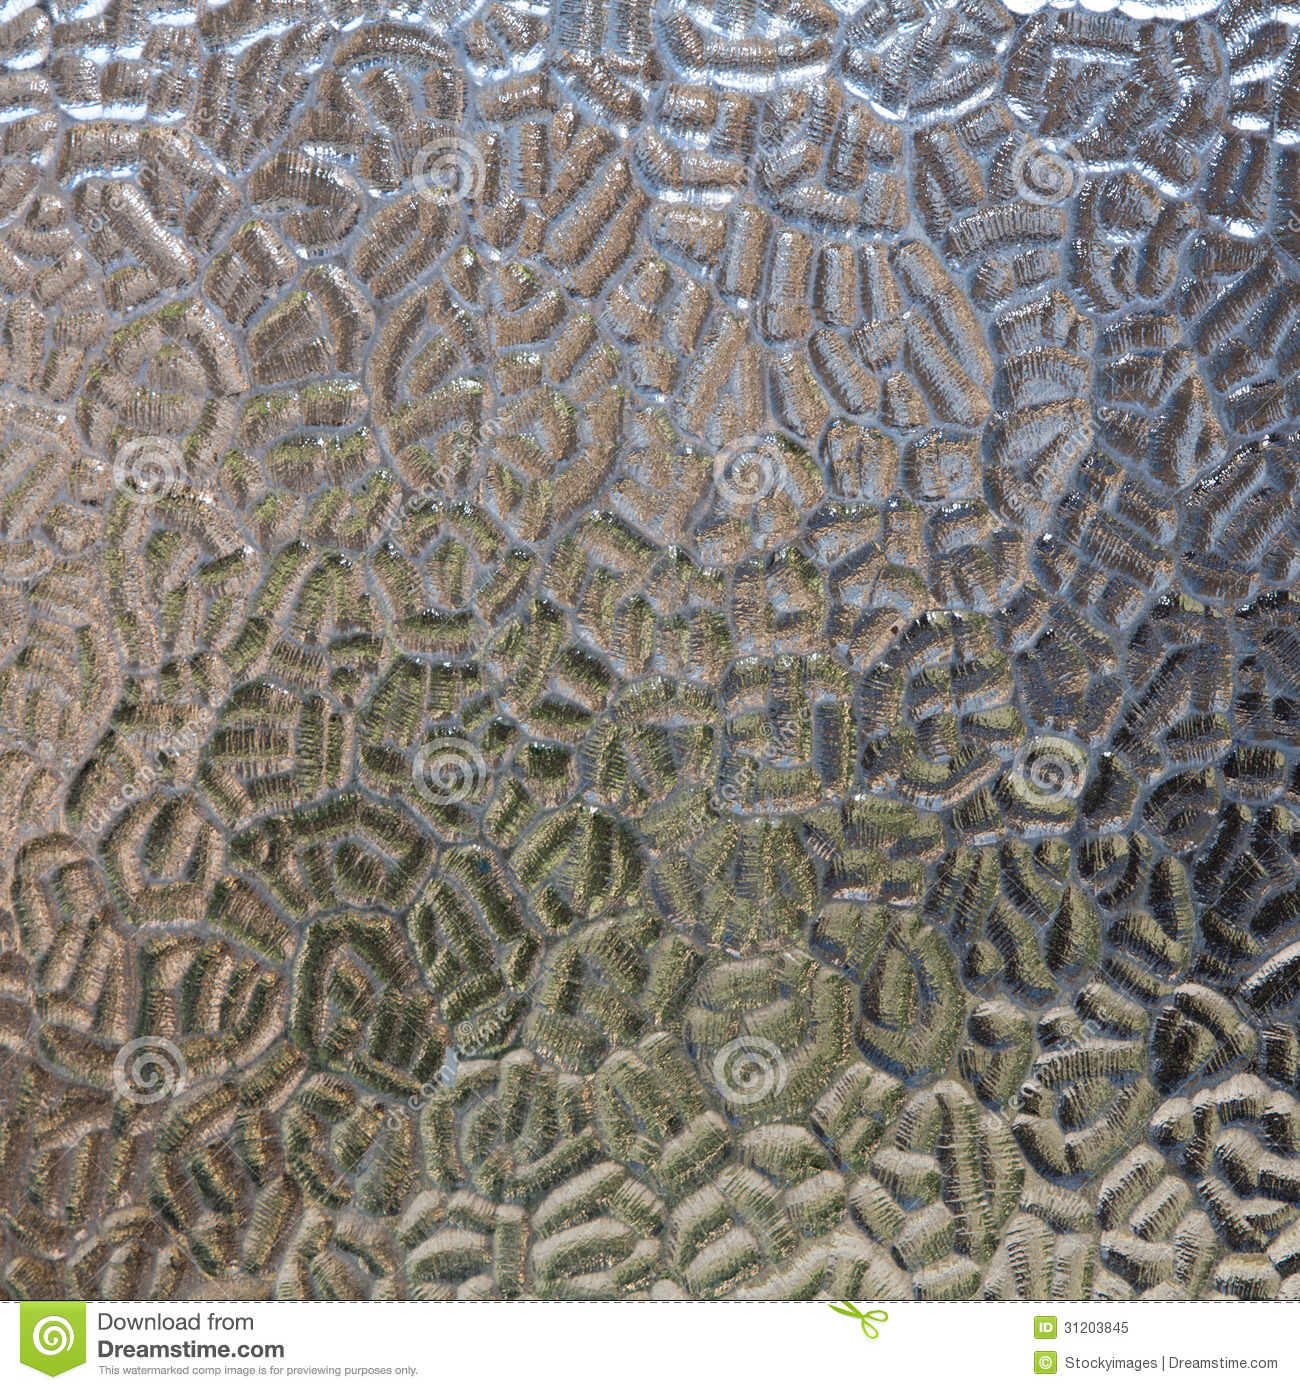 High Resolution Seamless Texture Royalty Free Stock Photo Image 31203845